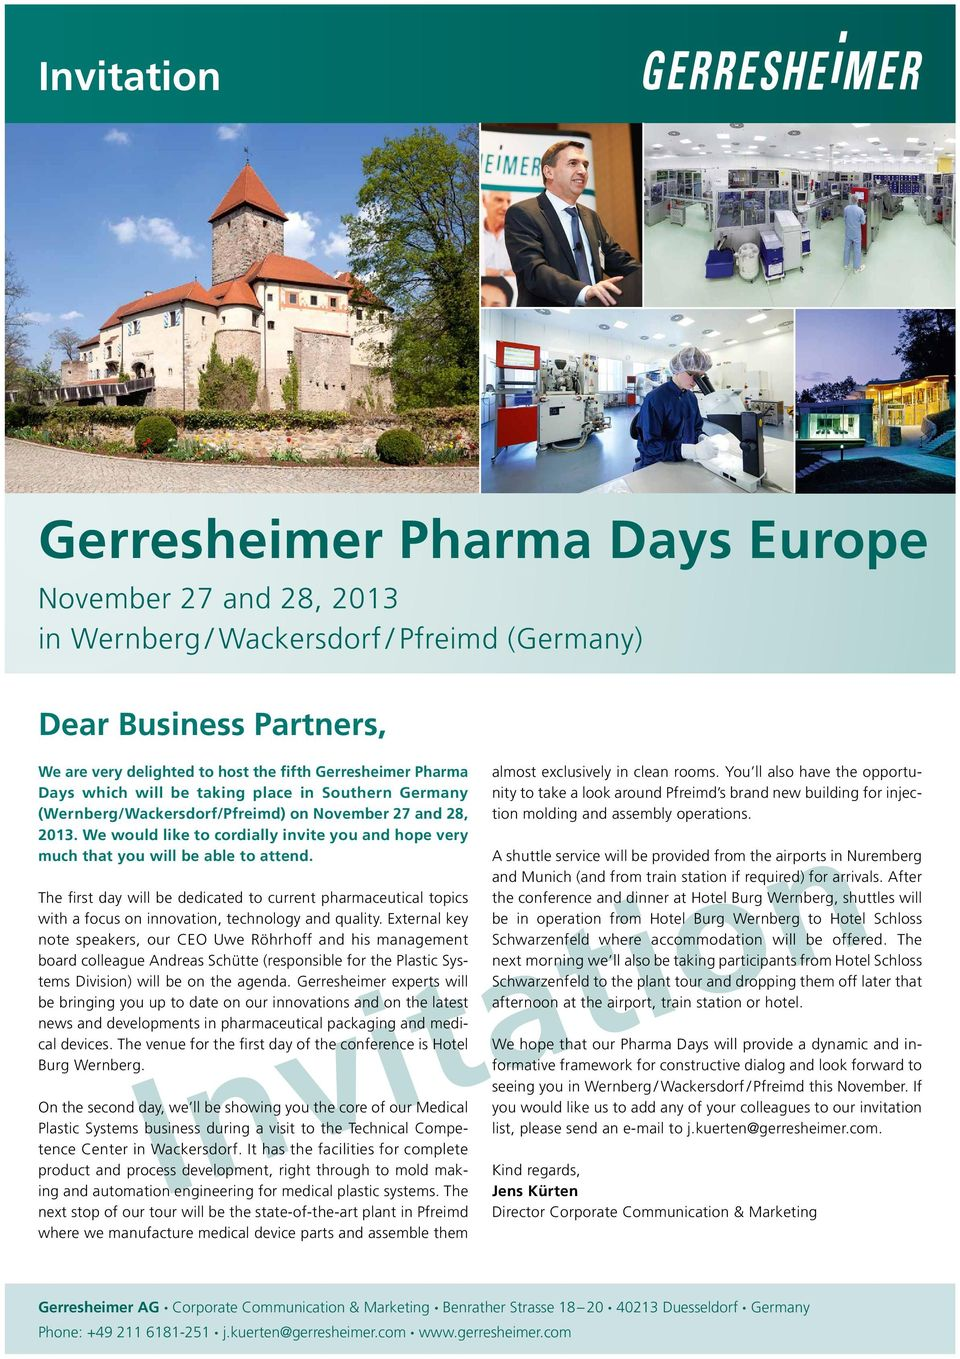 The first day will be dedicated to current pharmaceutical topics with a focus on innovation, technology and quality.